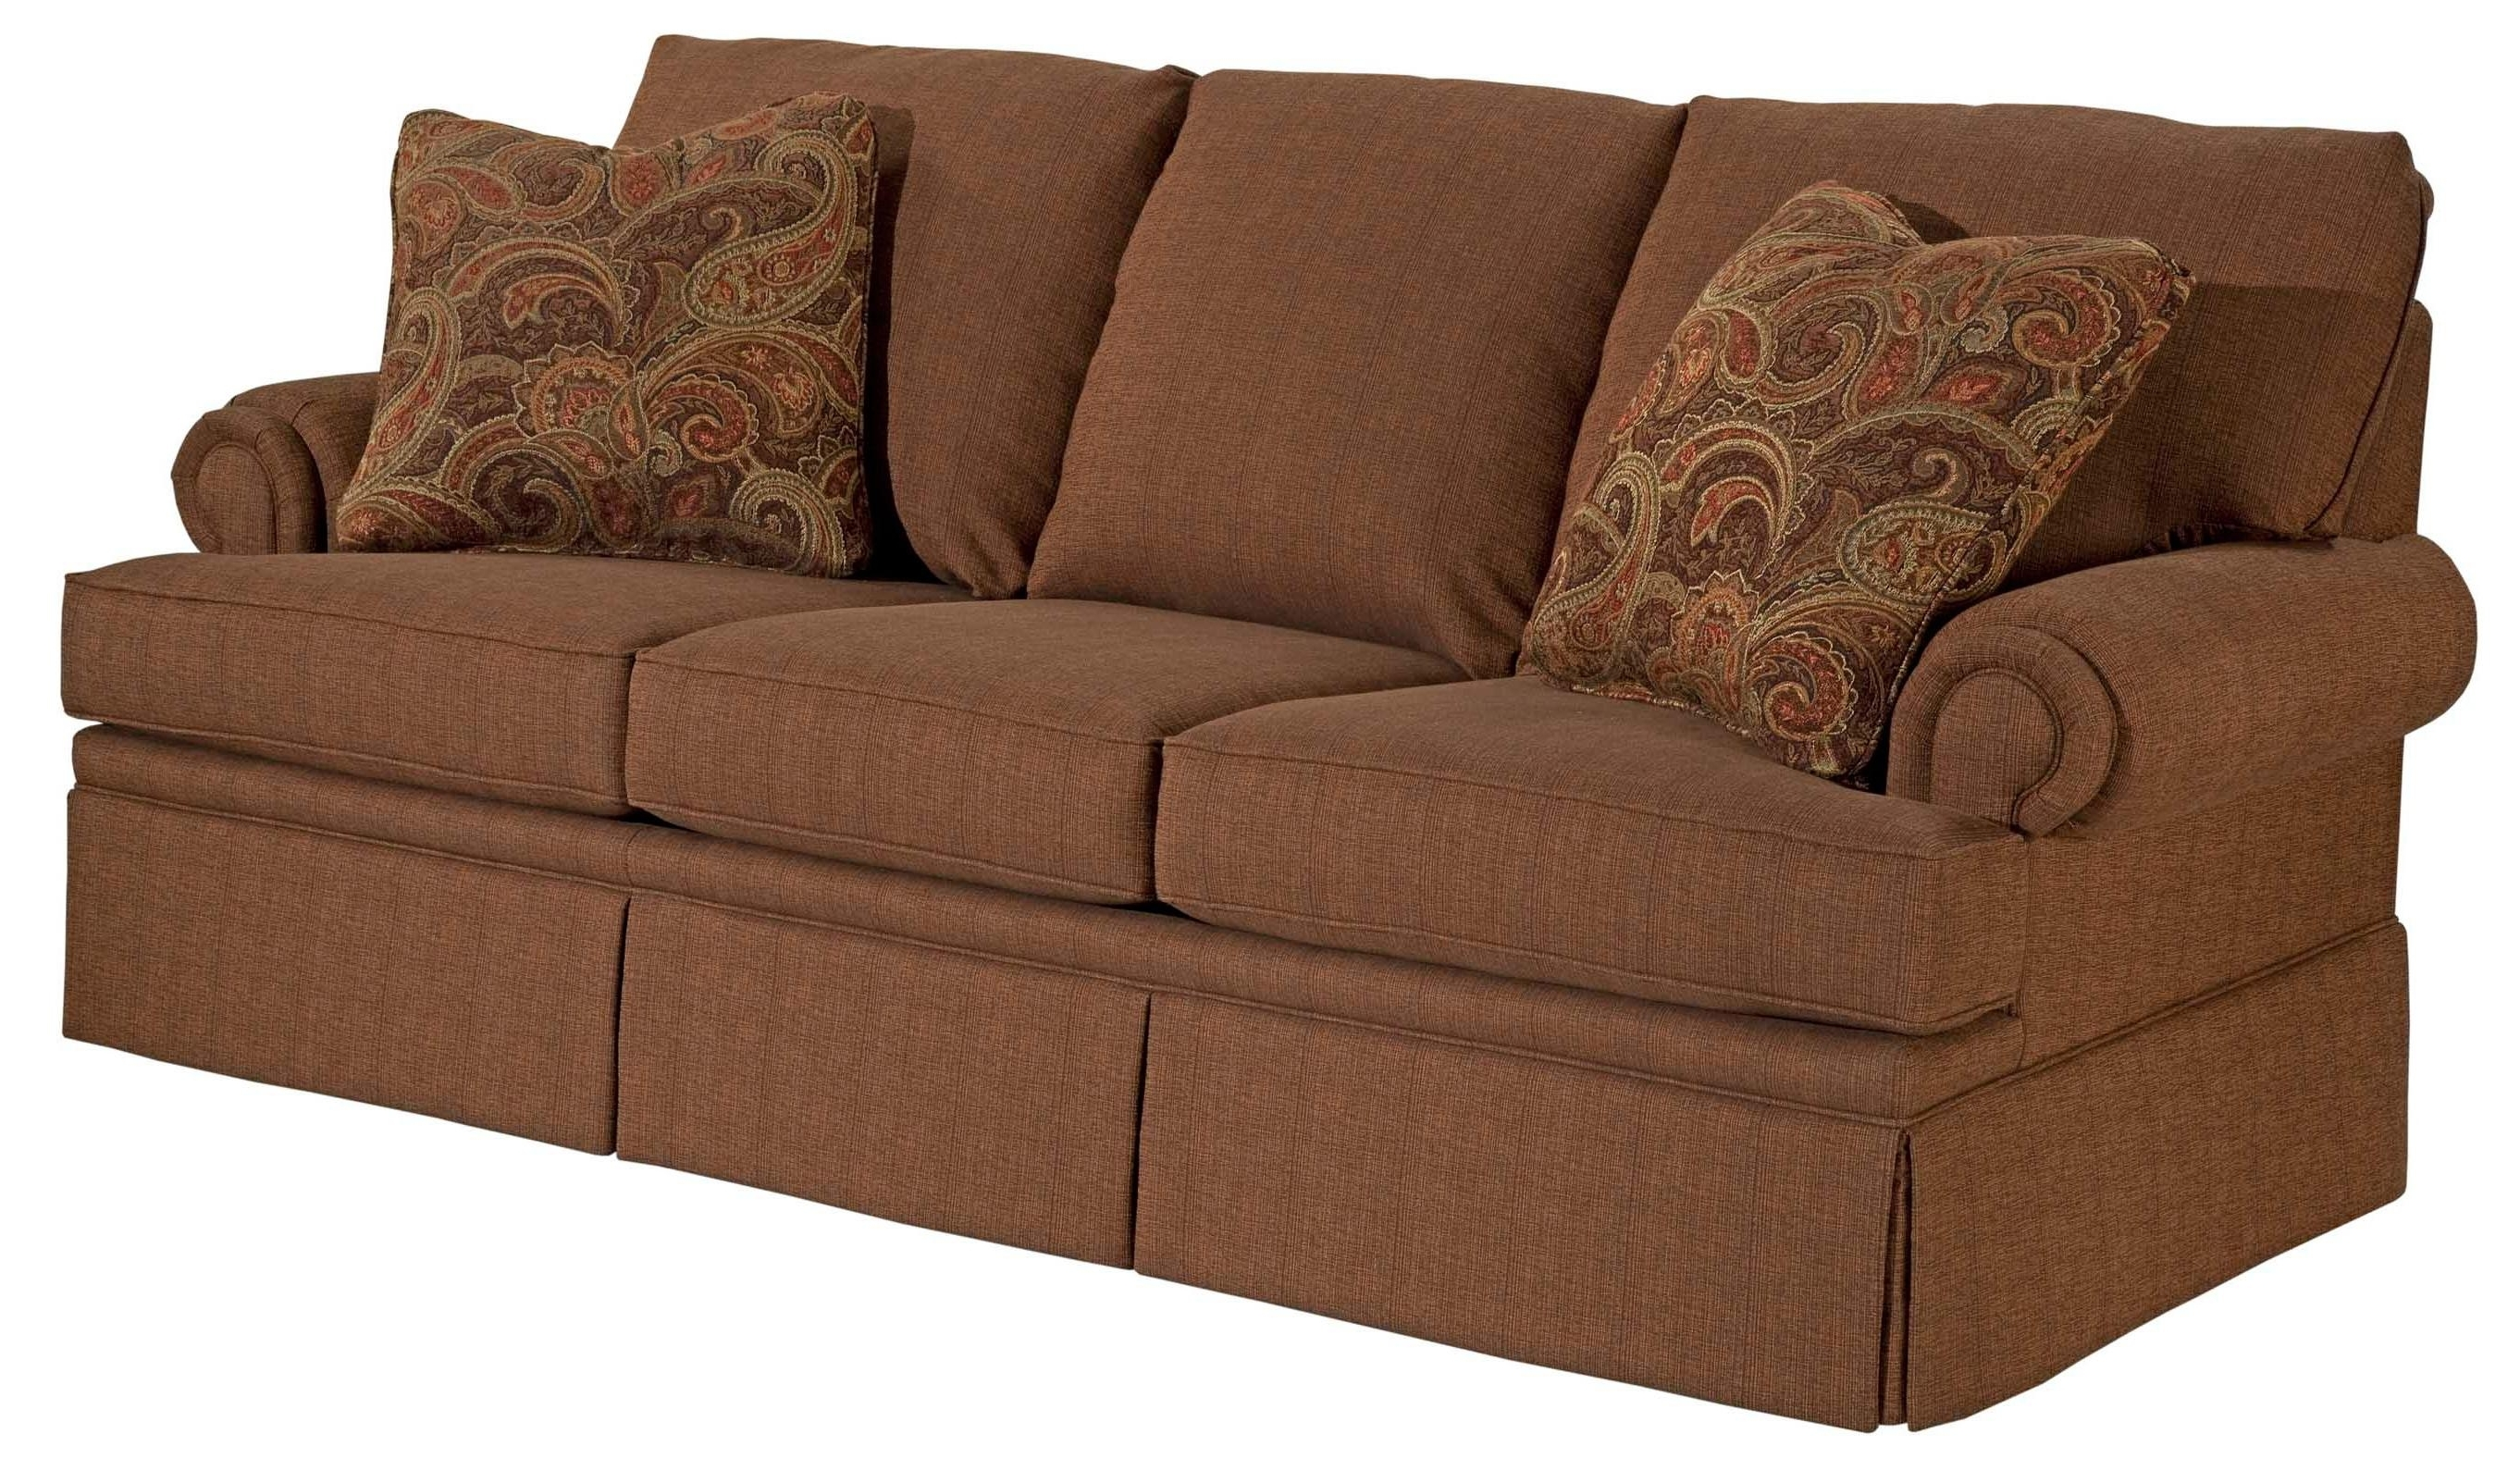 Broyhill Furniture Jenna Air Dream Sofa Sleeper With Queen Size Pertaining To Most Popular Quincy Il Sectional Sofas (View 1 of 20)